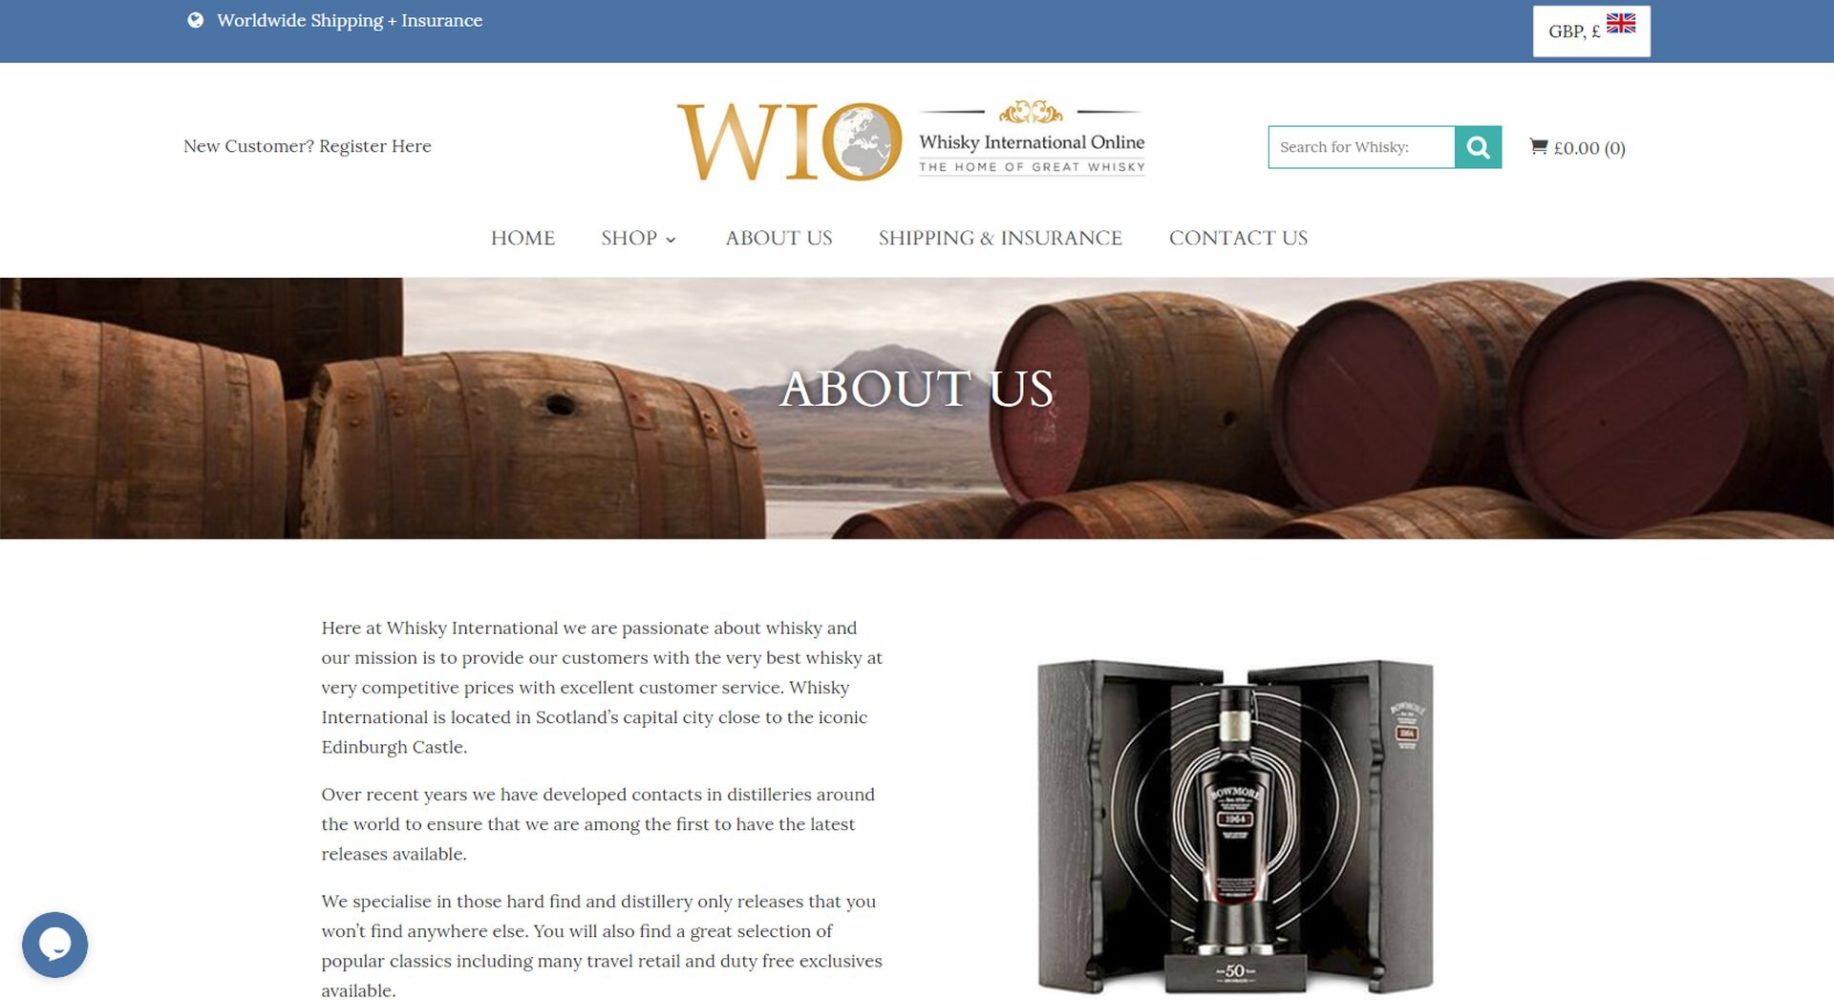 Whisky International Online About